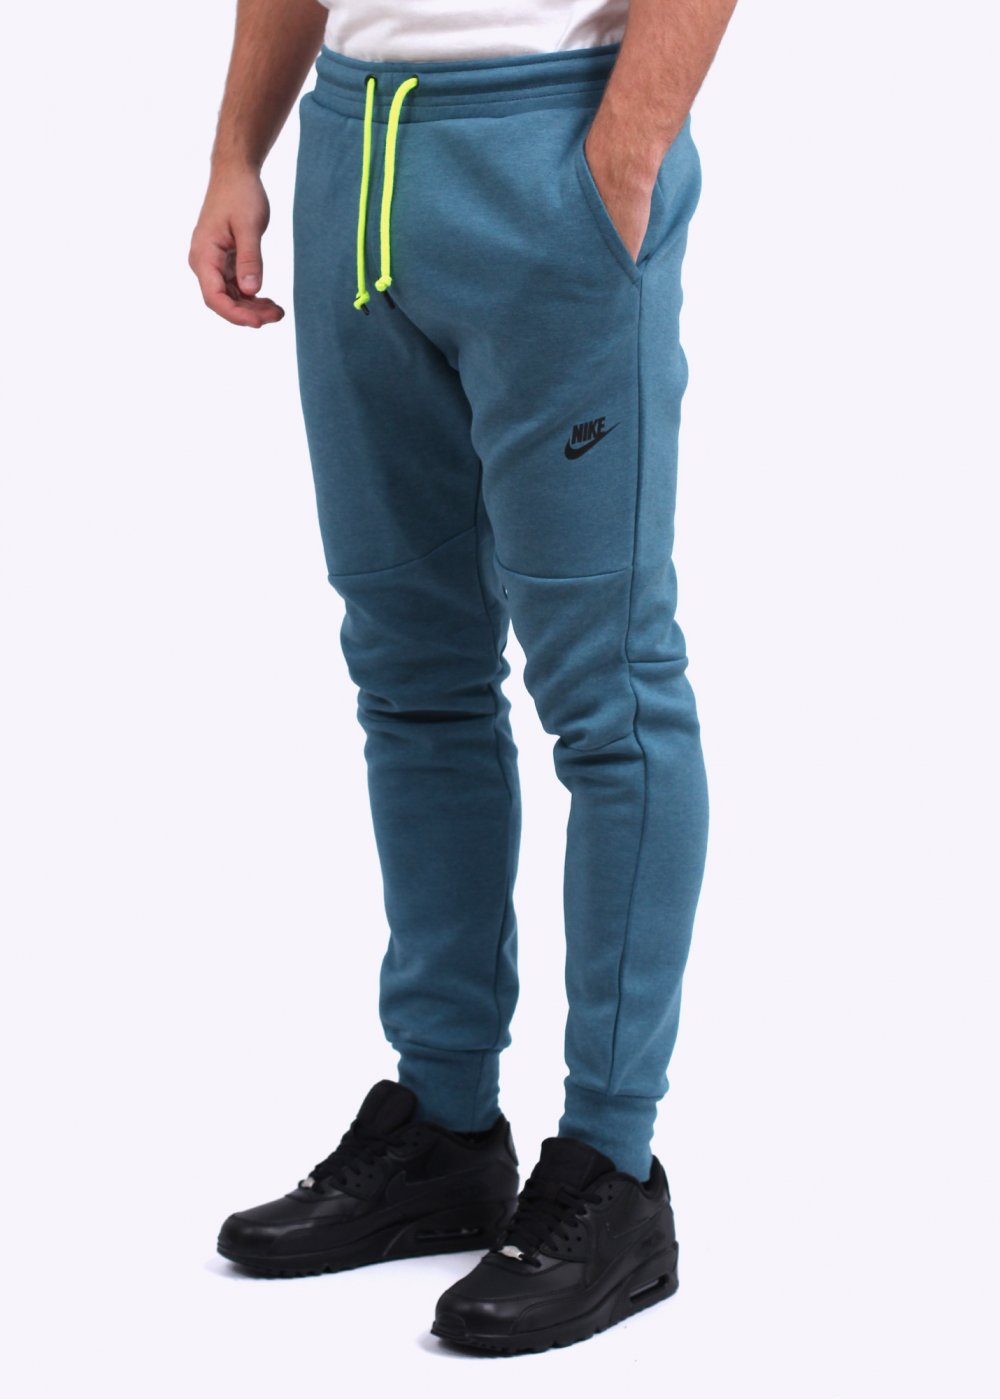 nike tech fleece pant teal. Black Bedroom Furniture Sets. Home Design Ideas